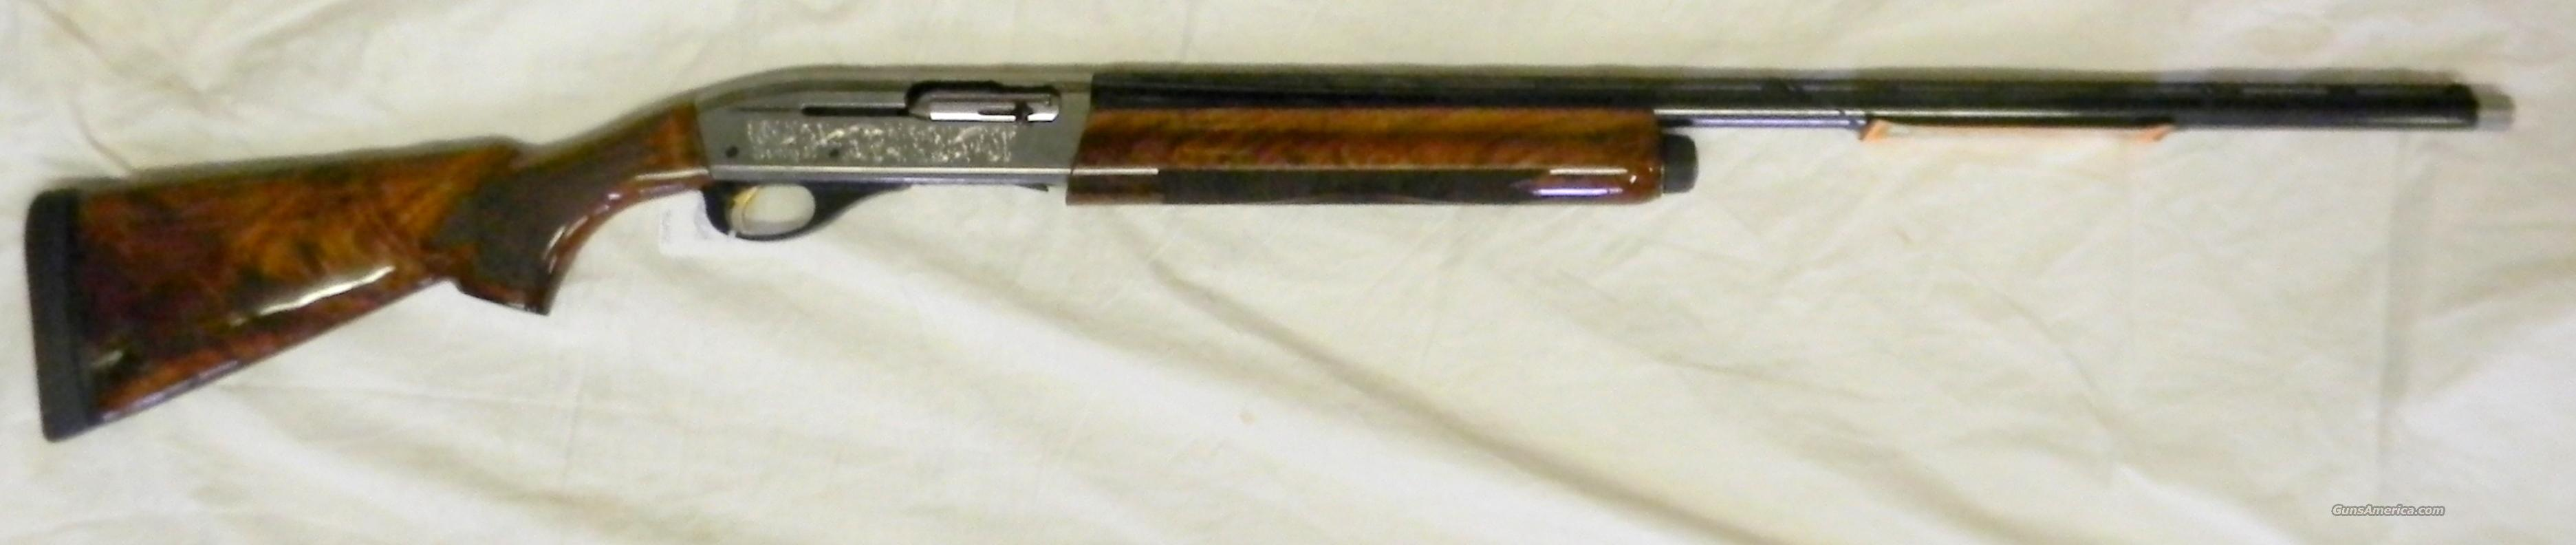 "Remington 1100 ""Sporting 20"" 20GA NIB  Guns > Shotguns > Remington Shotguns  > Autoloaders > Trap/Skeet"